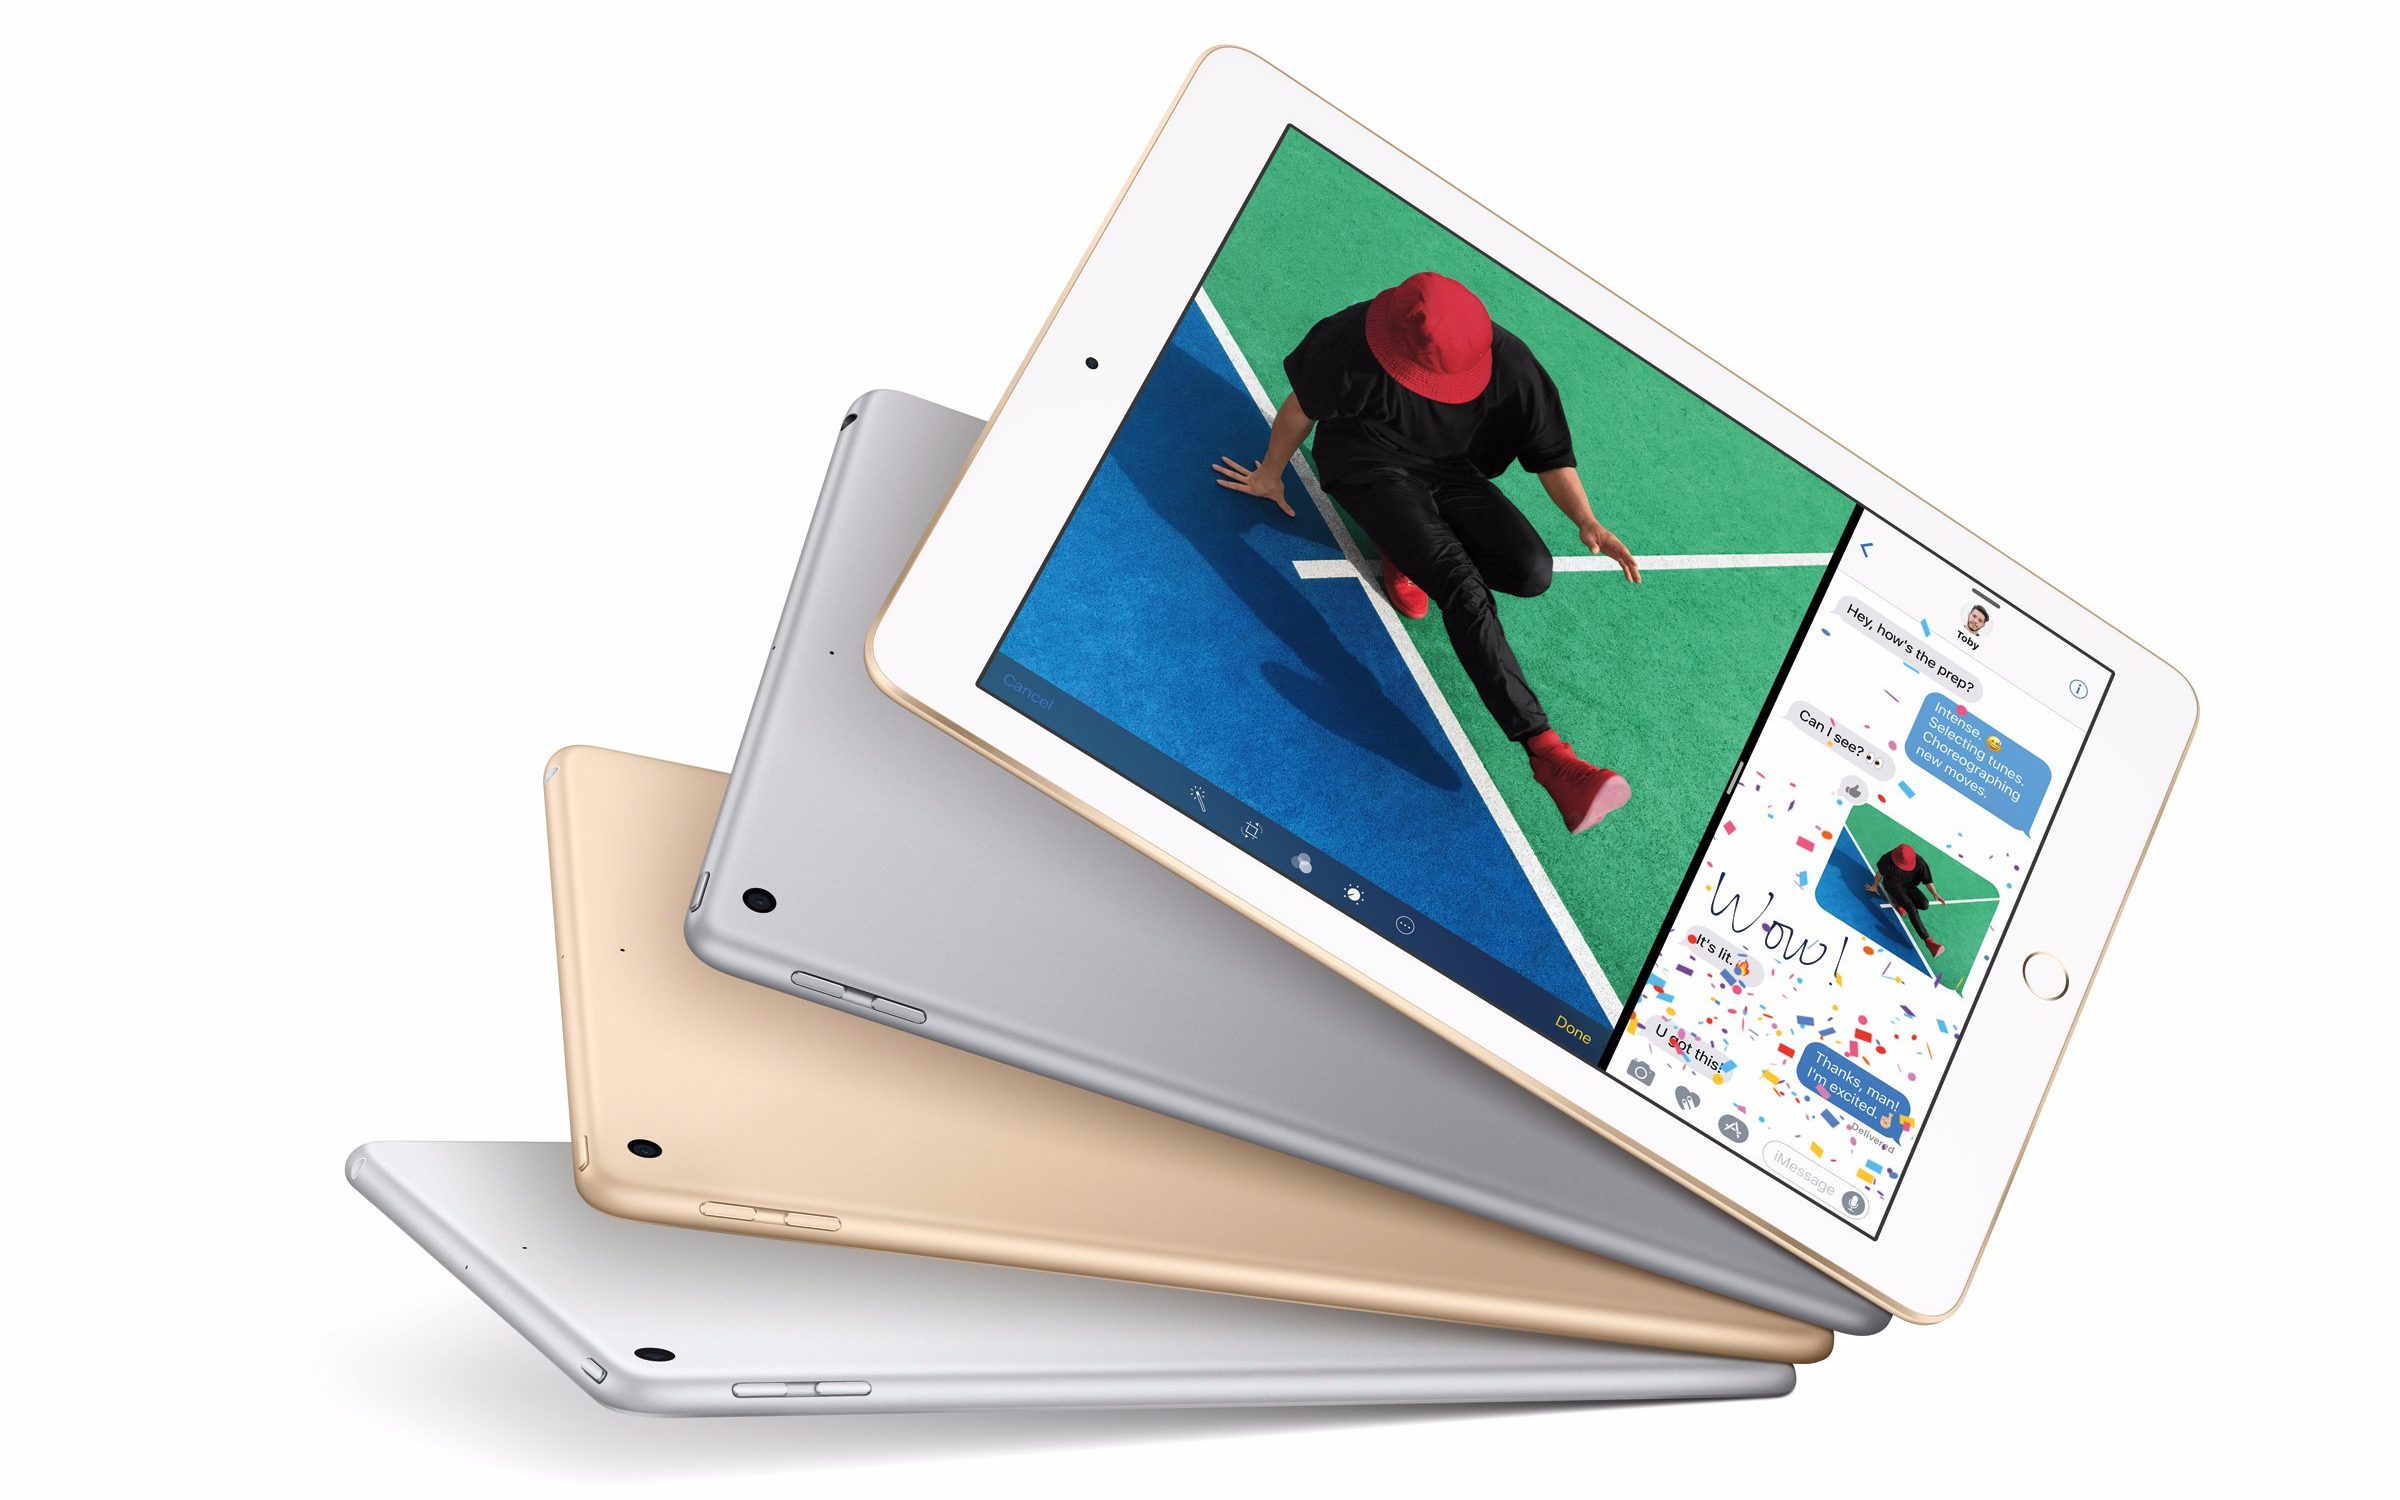 LEAK: Apple Seeks To Launch New Generation of iPads & iPod Touch